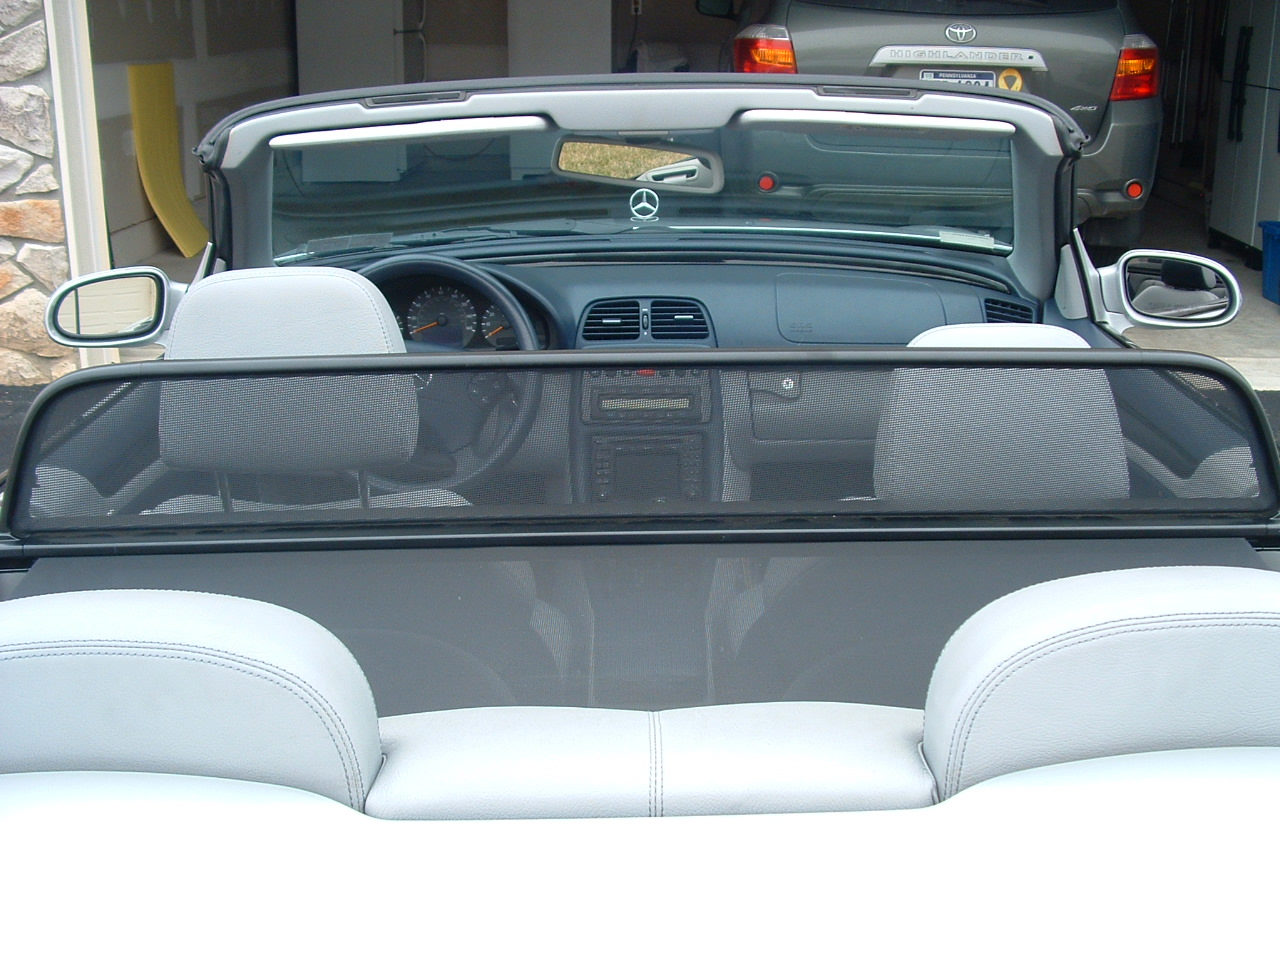 2000 Mercedes Benz Clk Class Pictures C6166 on 2000 mercedes clk 430 amg convertible price